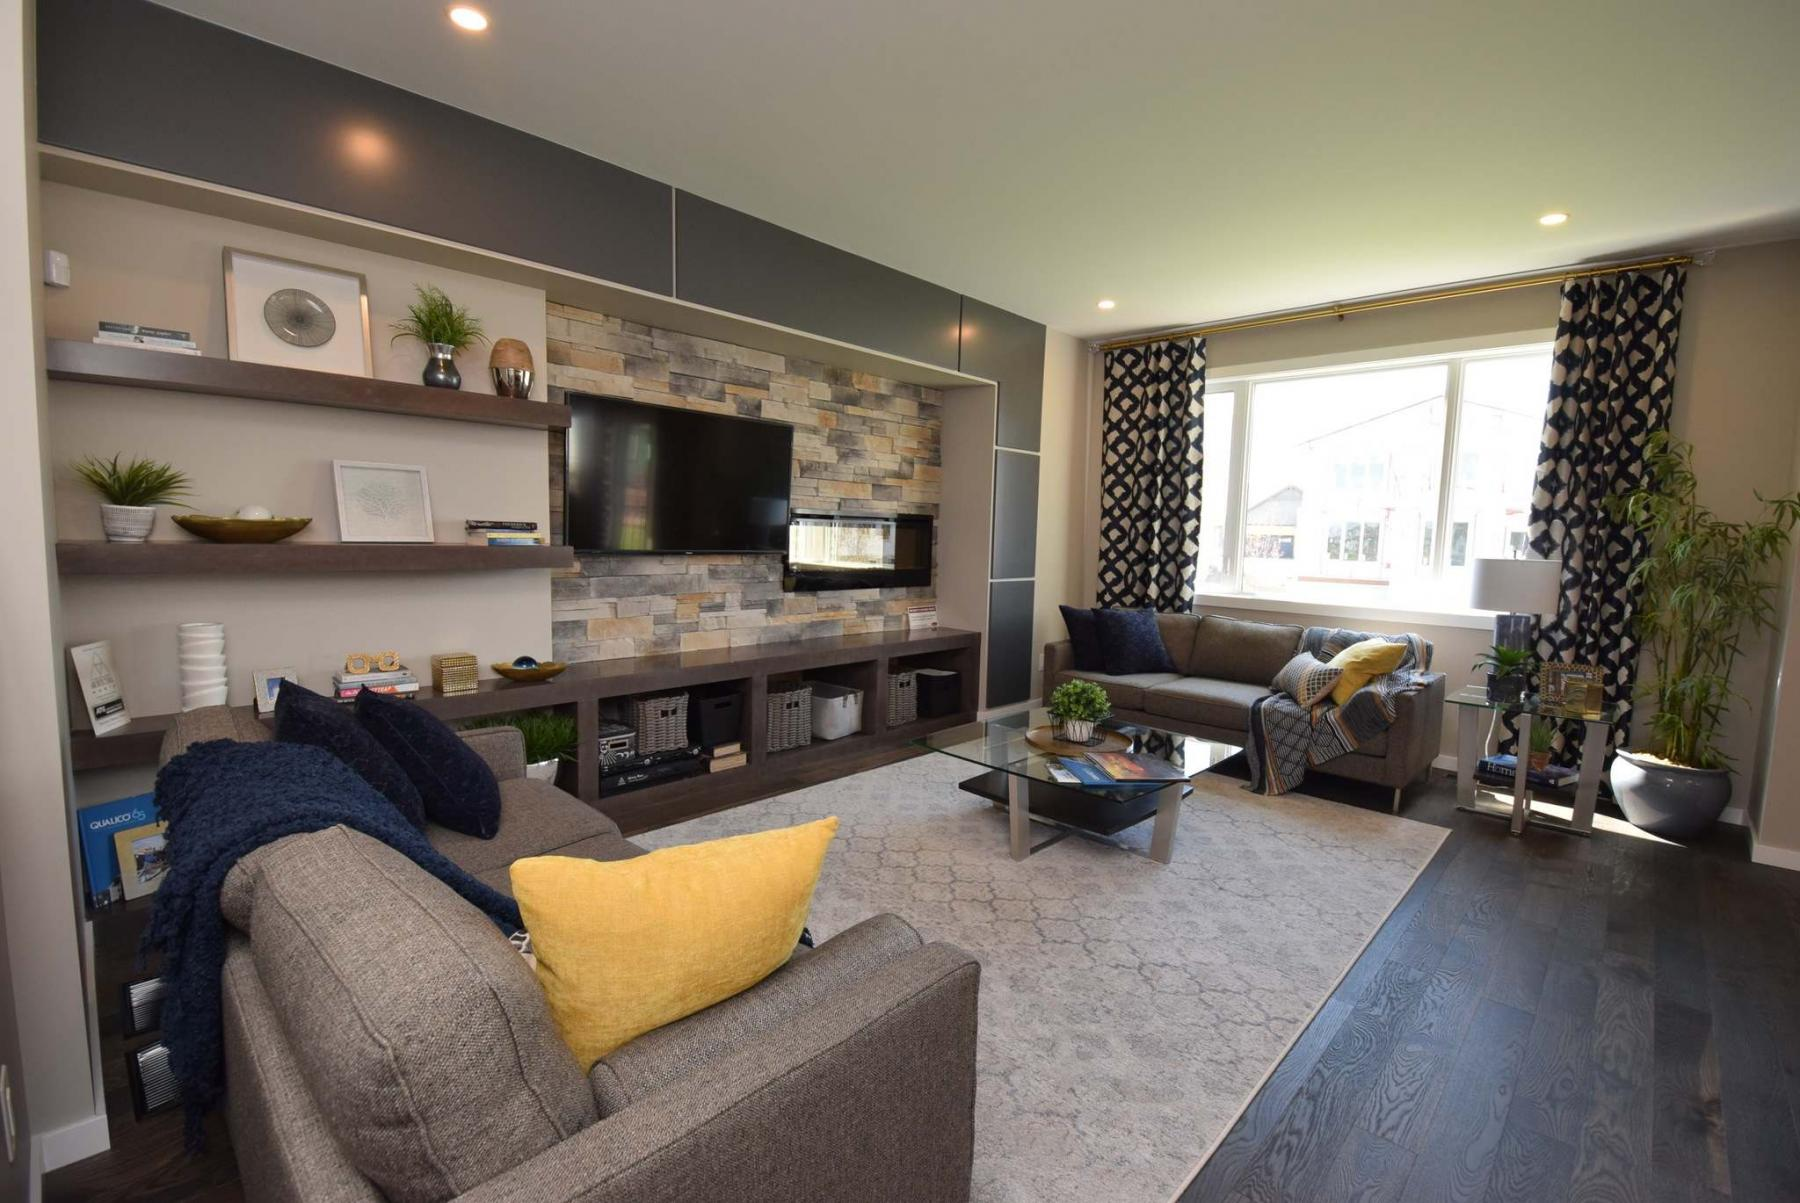 <p>Todd Lewys / Winnipeg Free Press files</p><p>Manitoba's best homebuilders will showcase more than 130 new show homes during the Manitoba Home Builders' Association 2019 Fall Parade of Homes. </p>